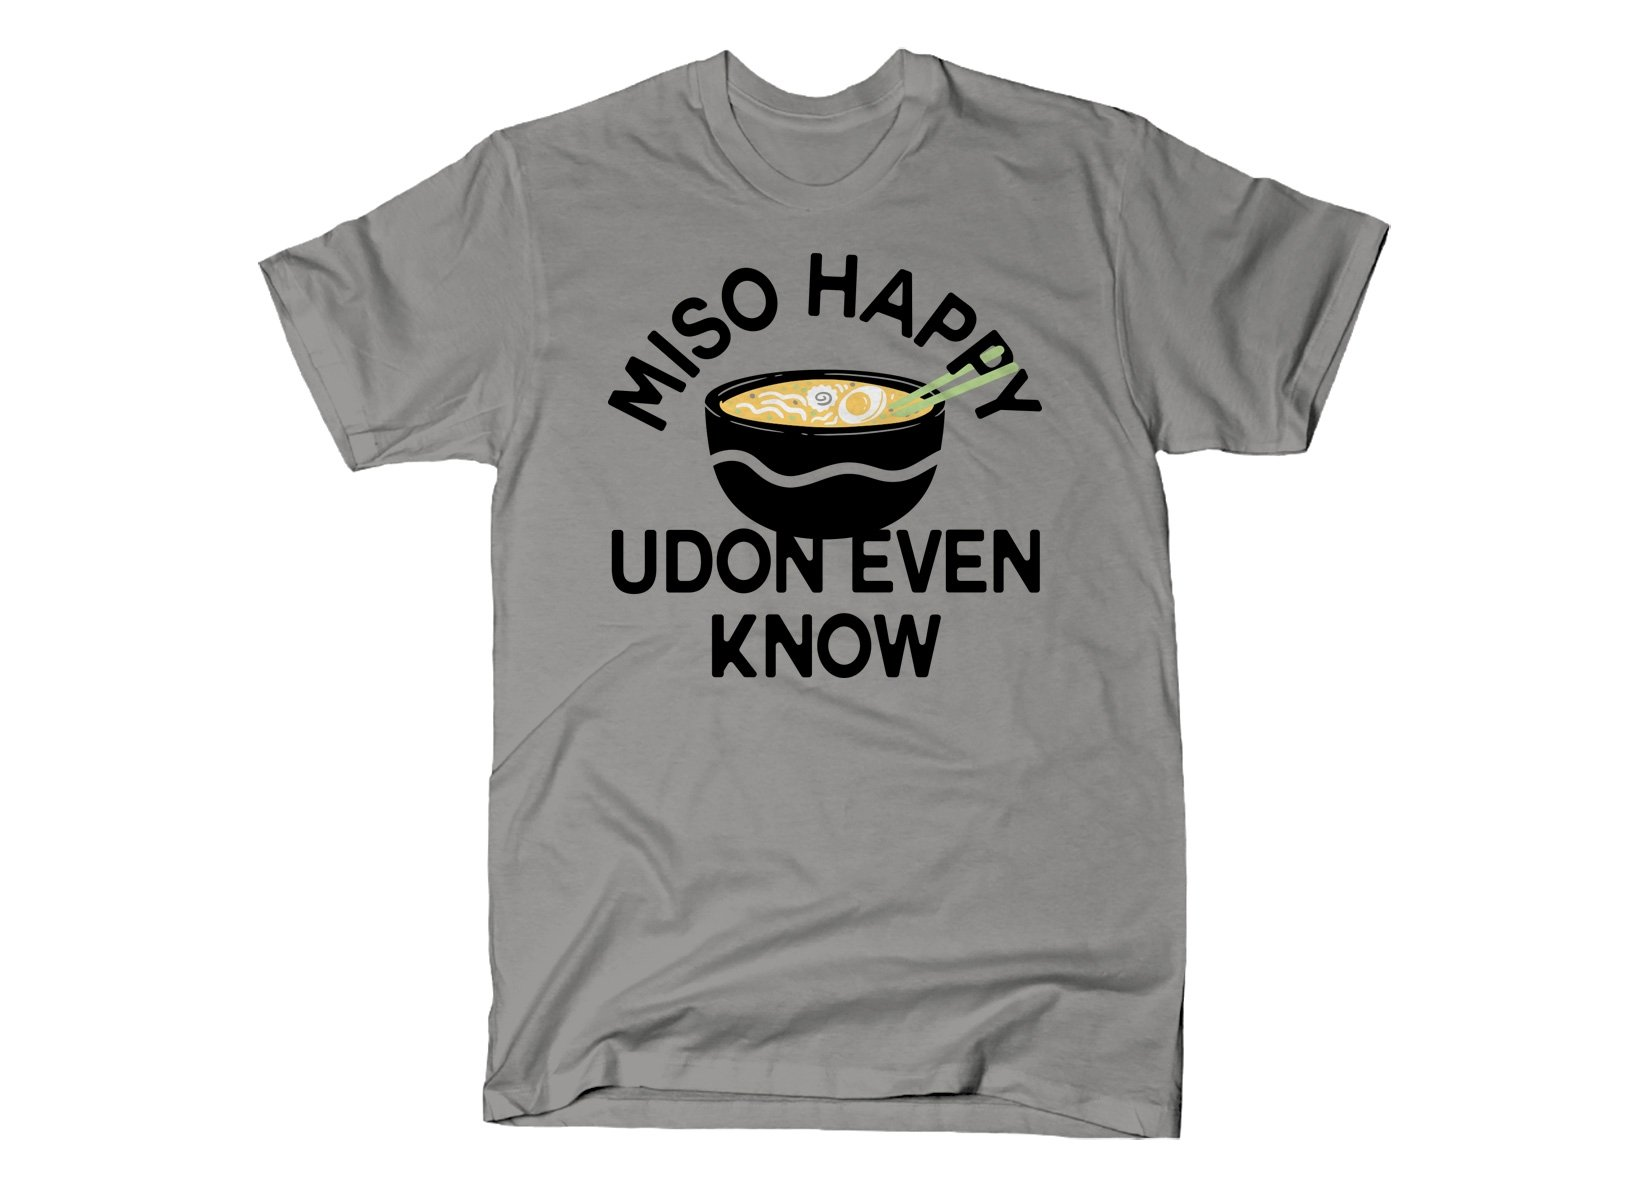 Miso Happy on Mens T-Shirt